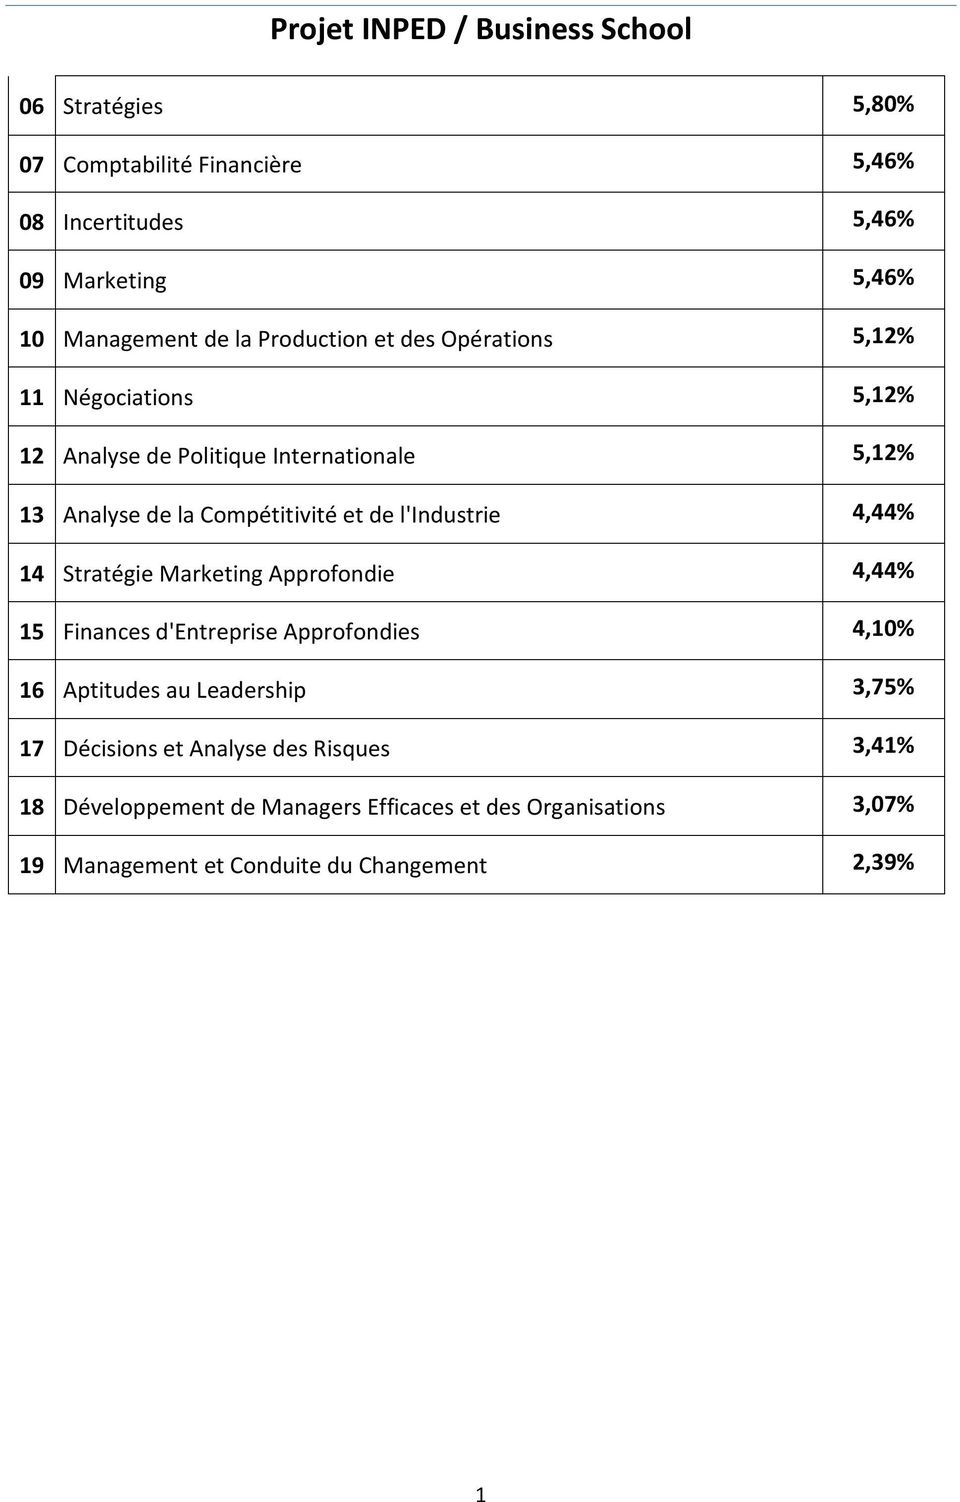 4,44% 14 Stratégie Marketing Approfondie 4,44% 15 Finances d'entreprise Approfondies 4,10% 16 Aptitudes au Leadership 3,75% 17